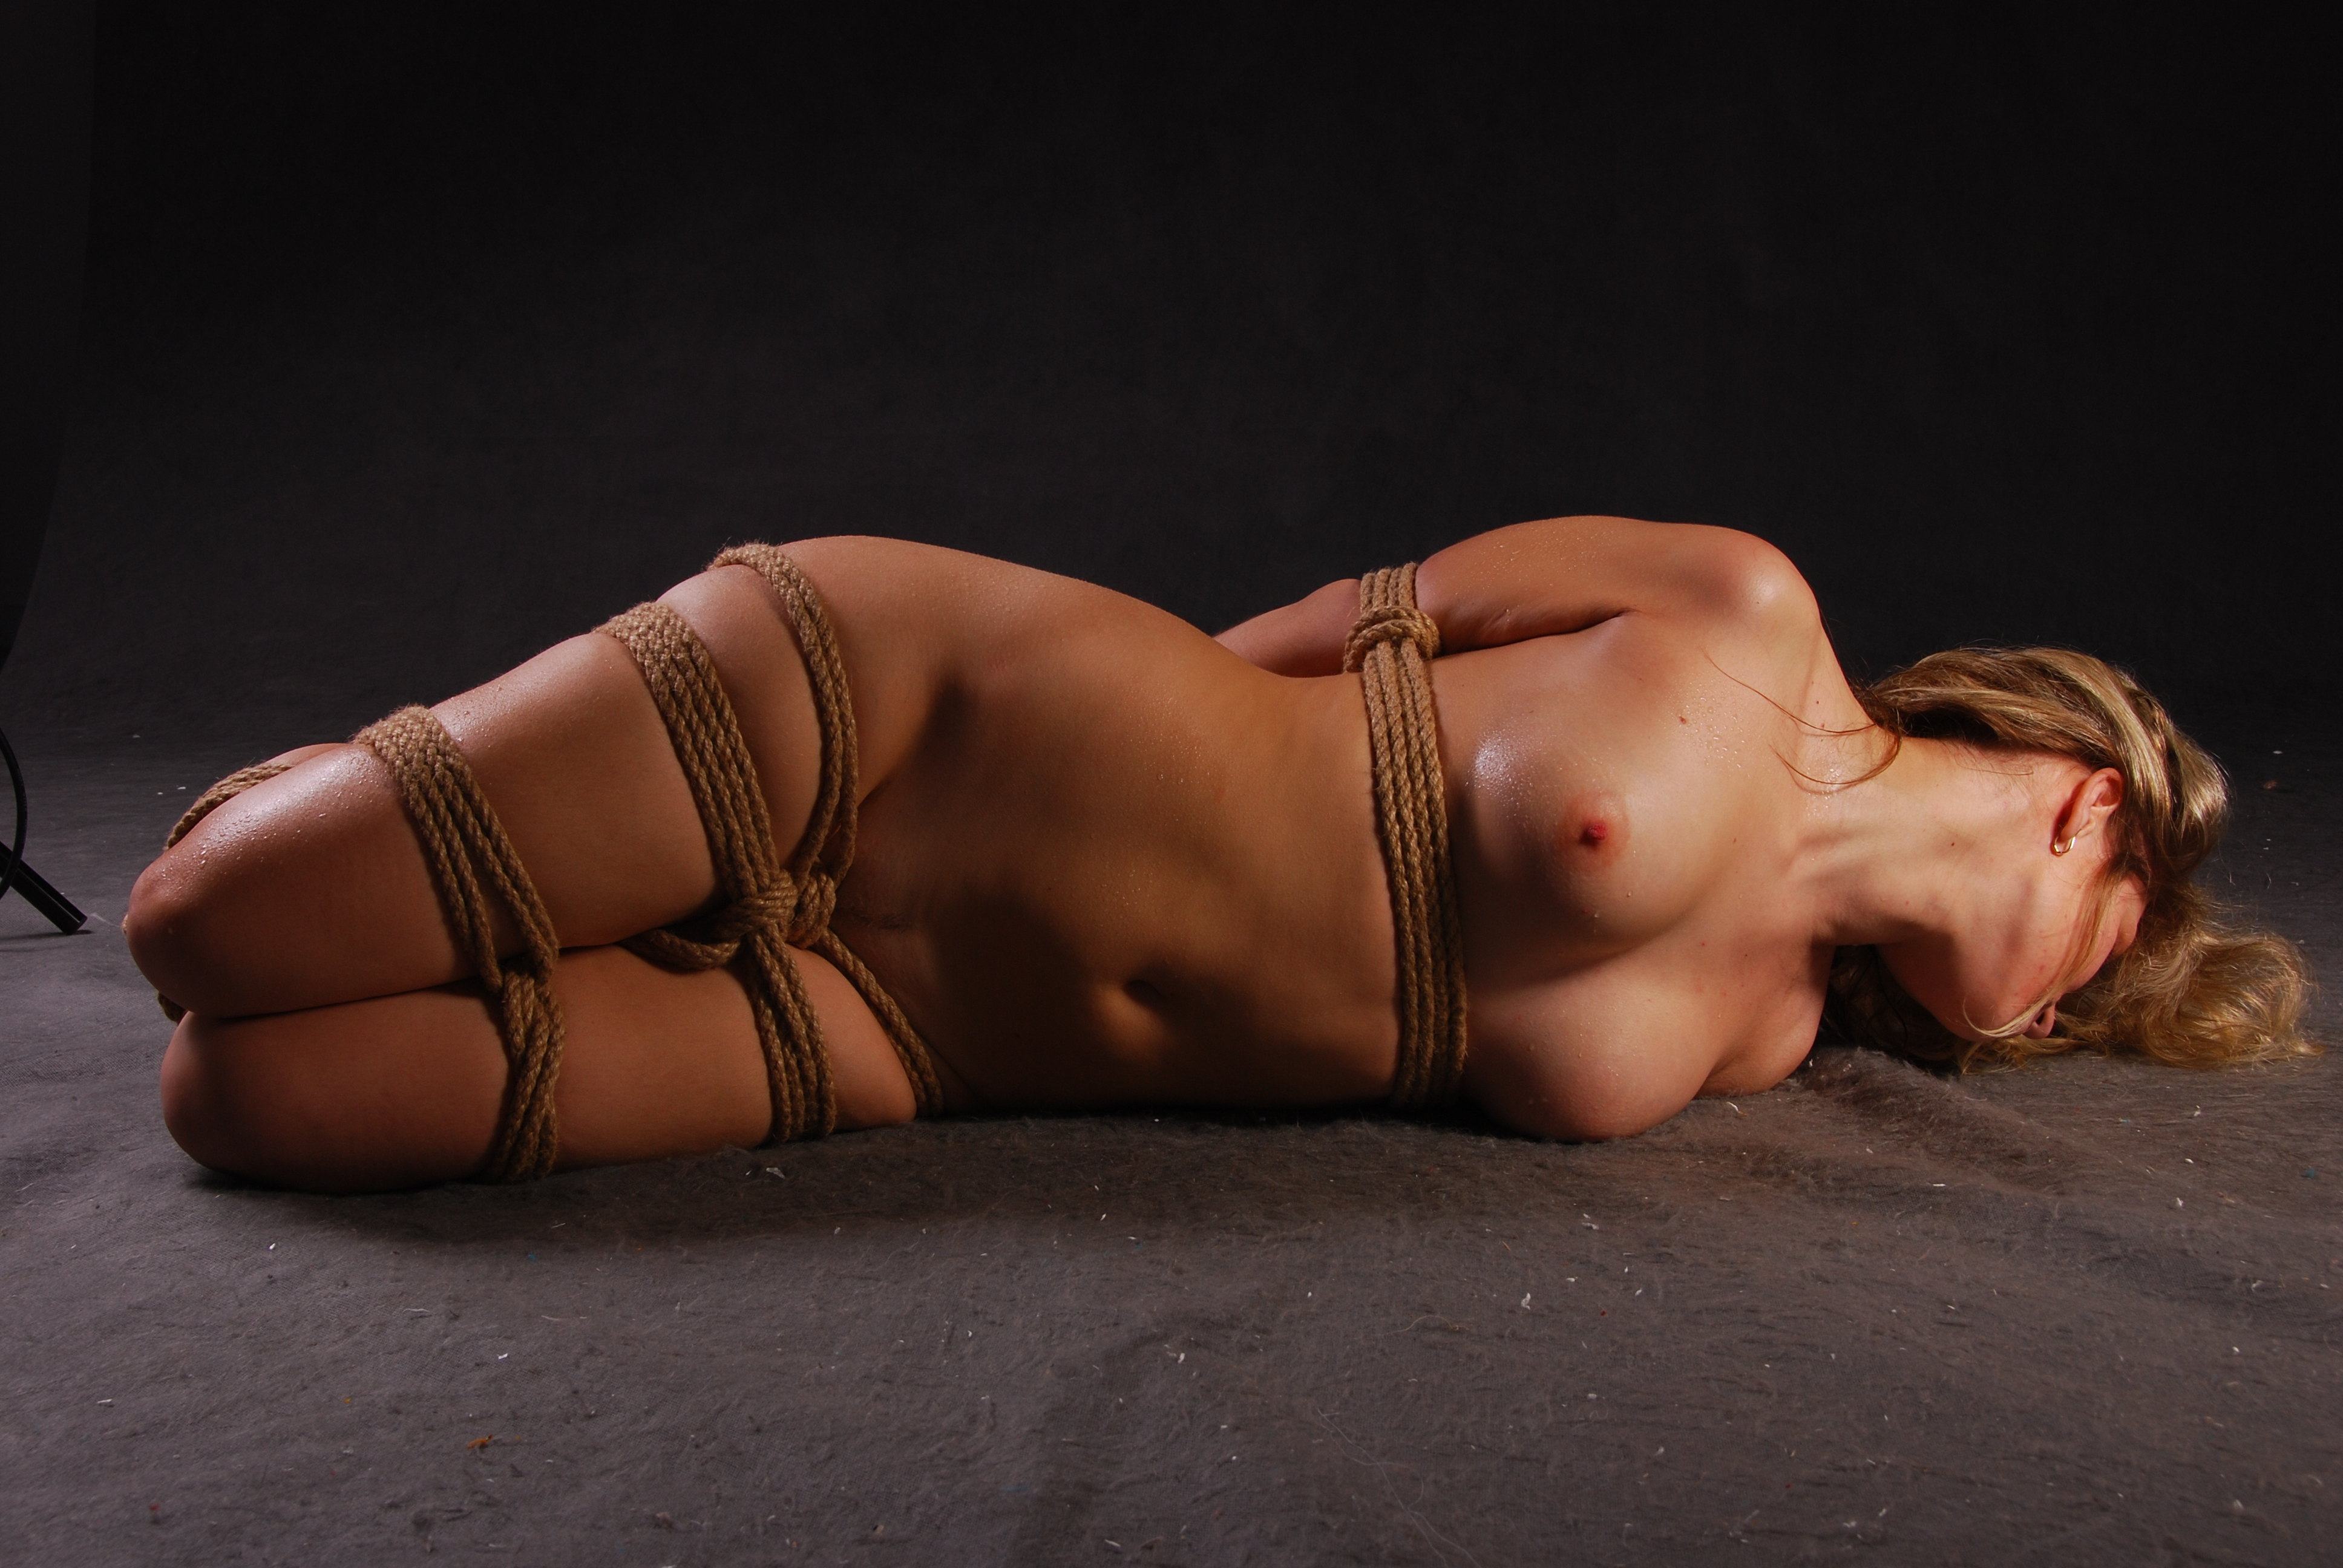 Head rope bondage